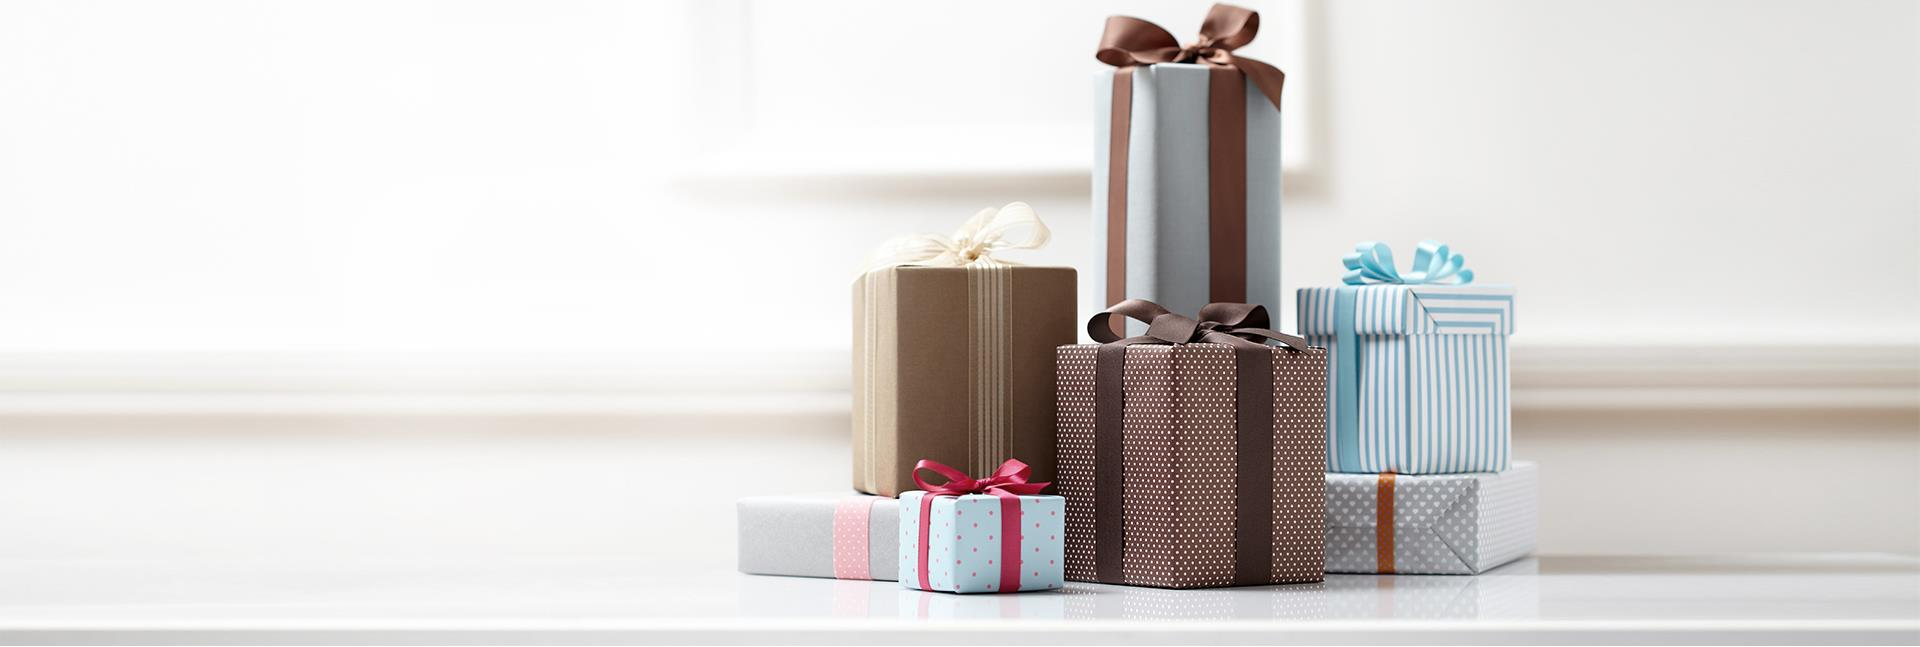 Finding the best gifting material for your clients